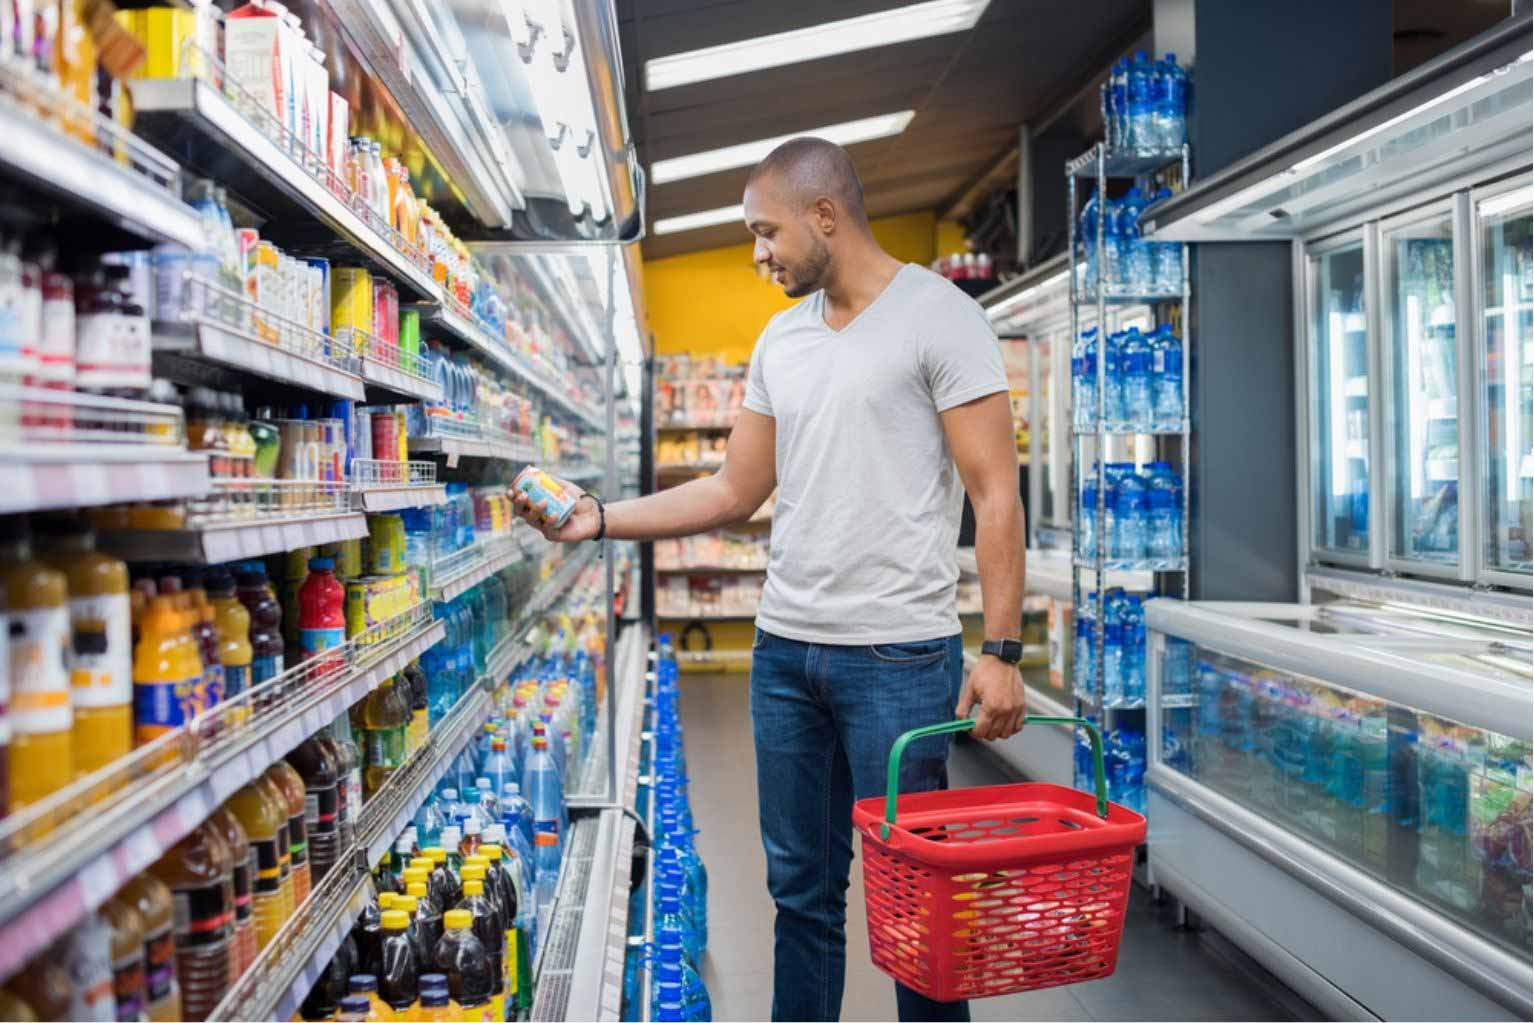 Man in a gray shirt is standing at the refrigerator at a grocery store holding a can of juice and a grocery basket.